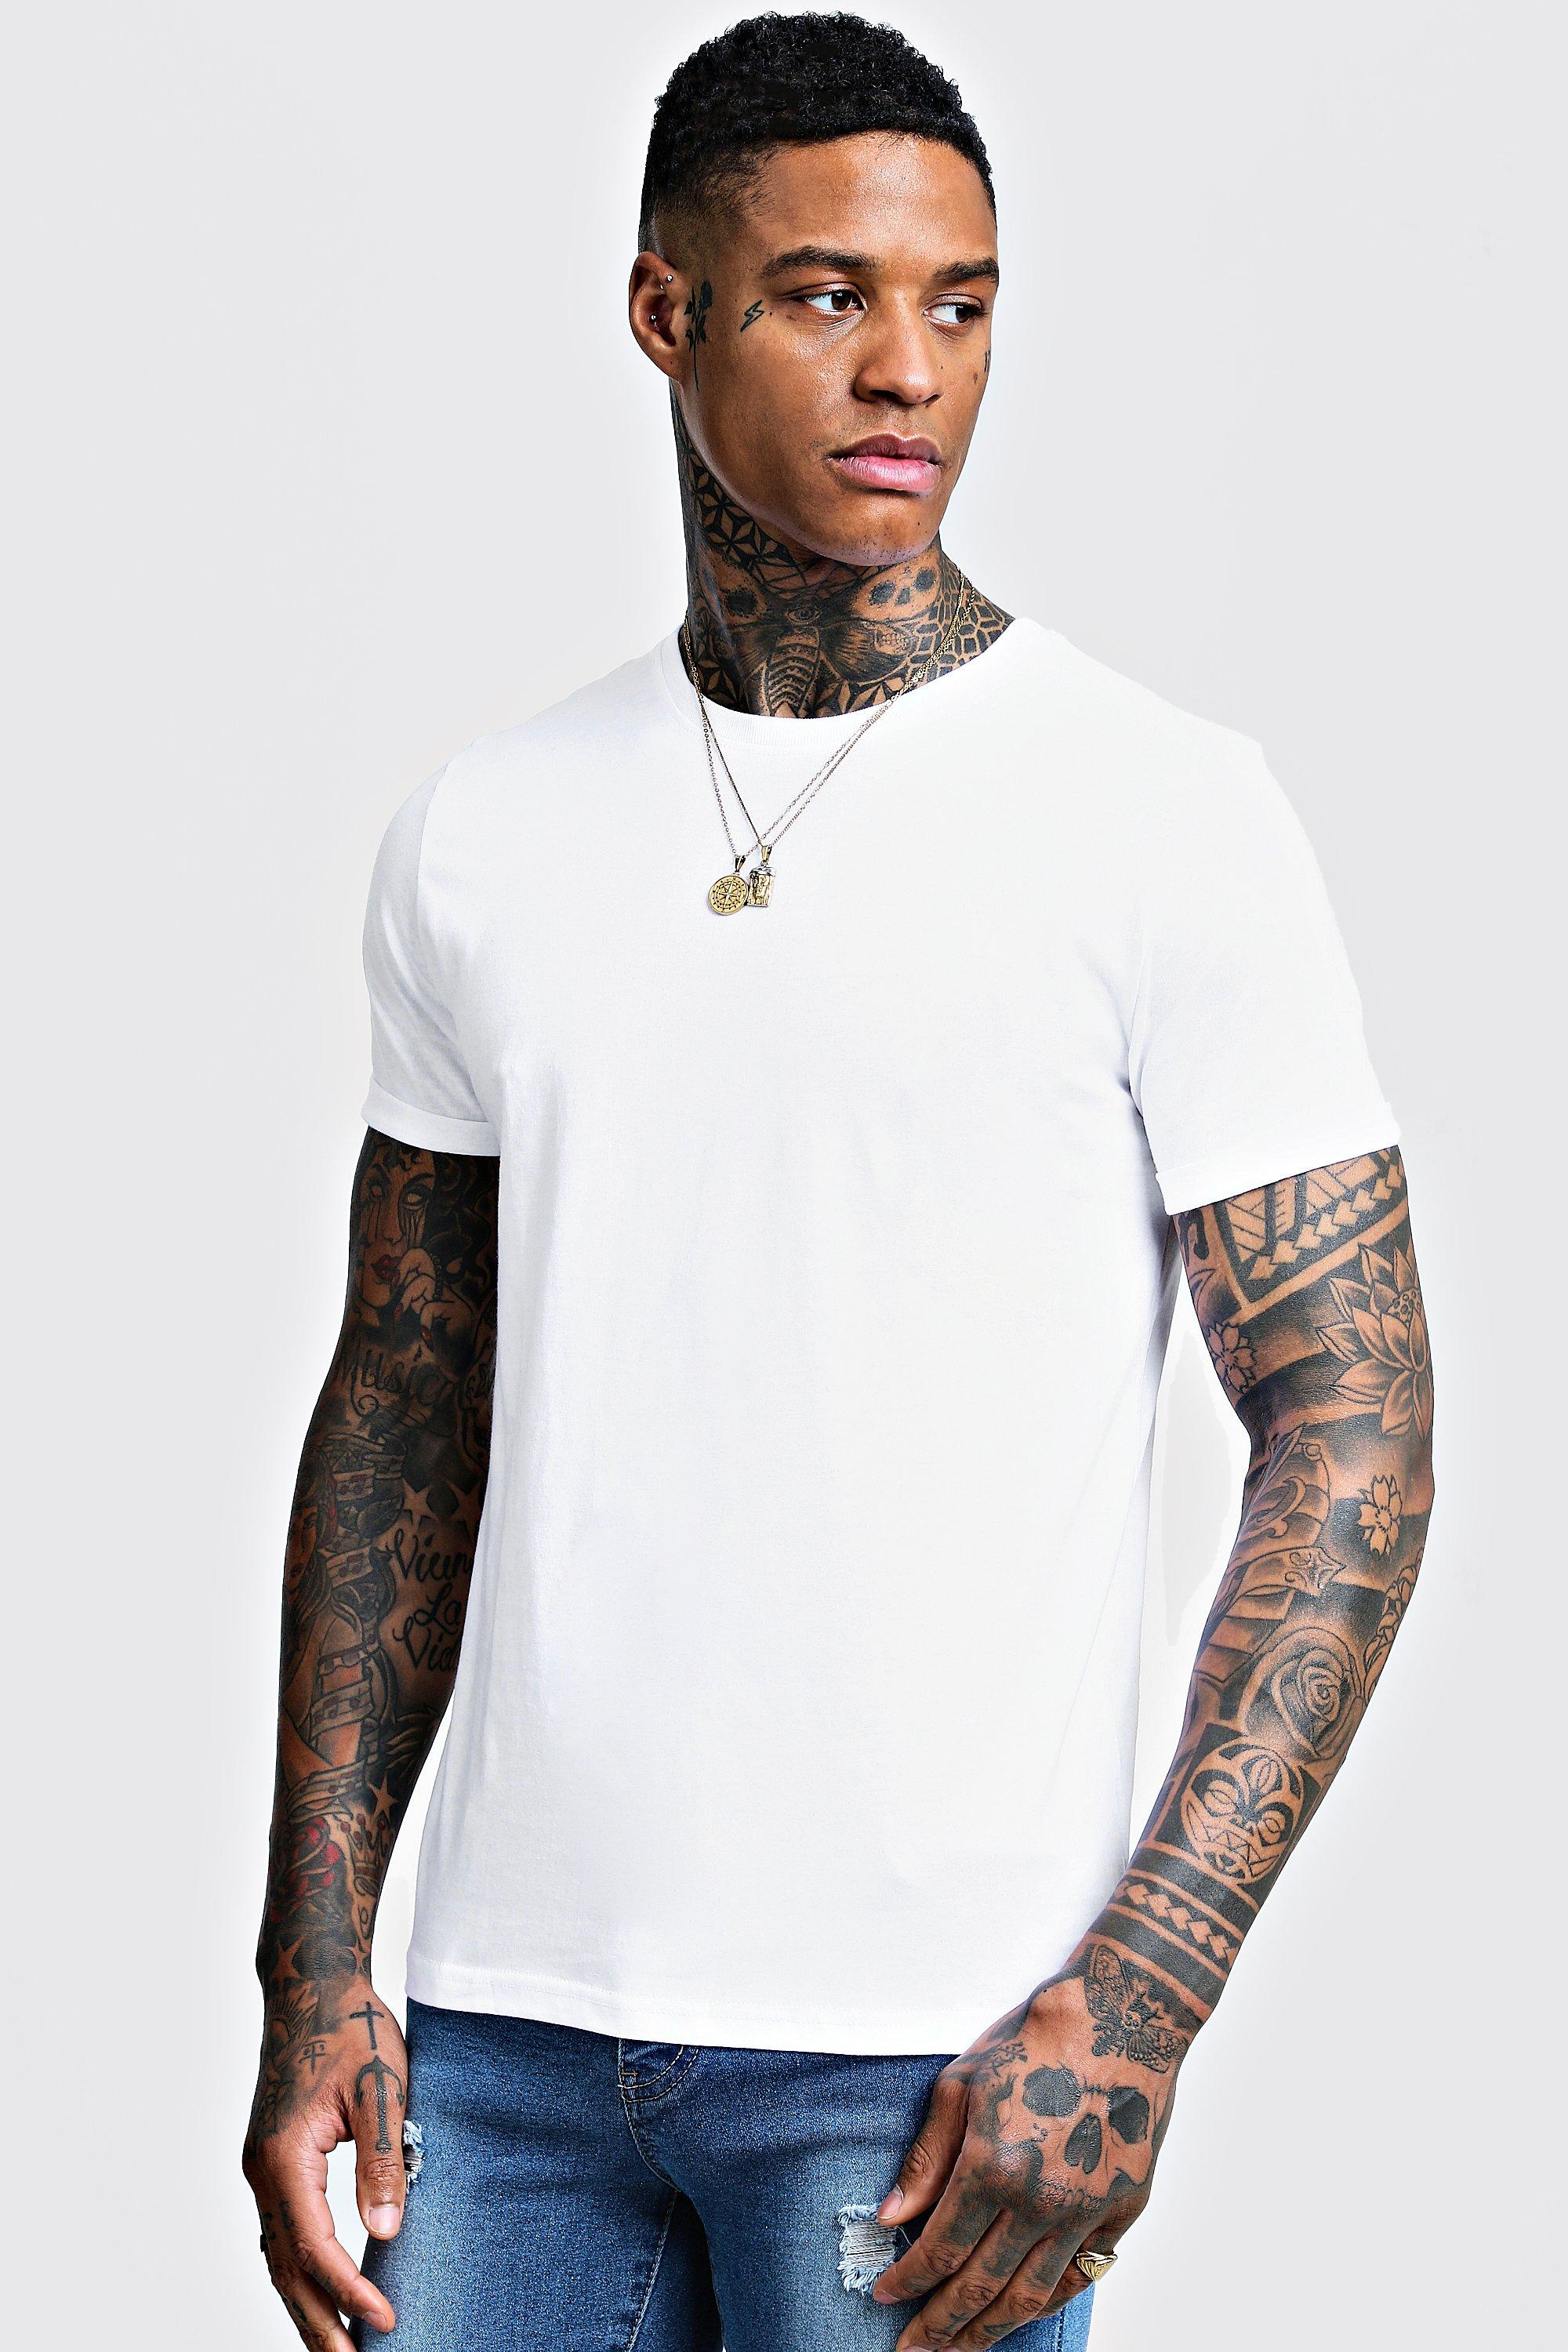 Mens Vintage Shirts – Casual, Dress, T-shirts, Polos Mens Crew Neck T-Shirt with Rolled Sleeves - White $4.80 AT vintagedancer.com